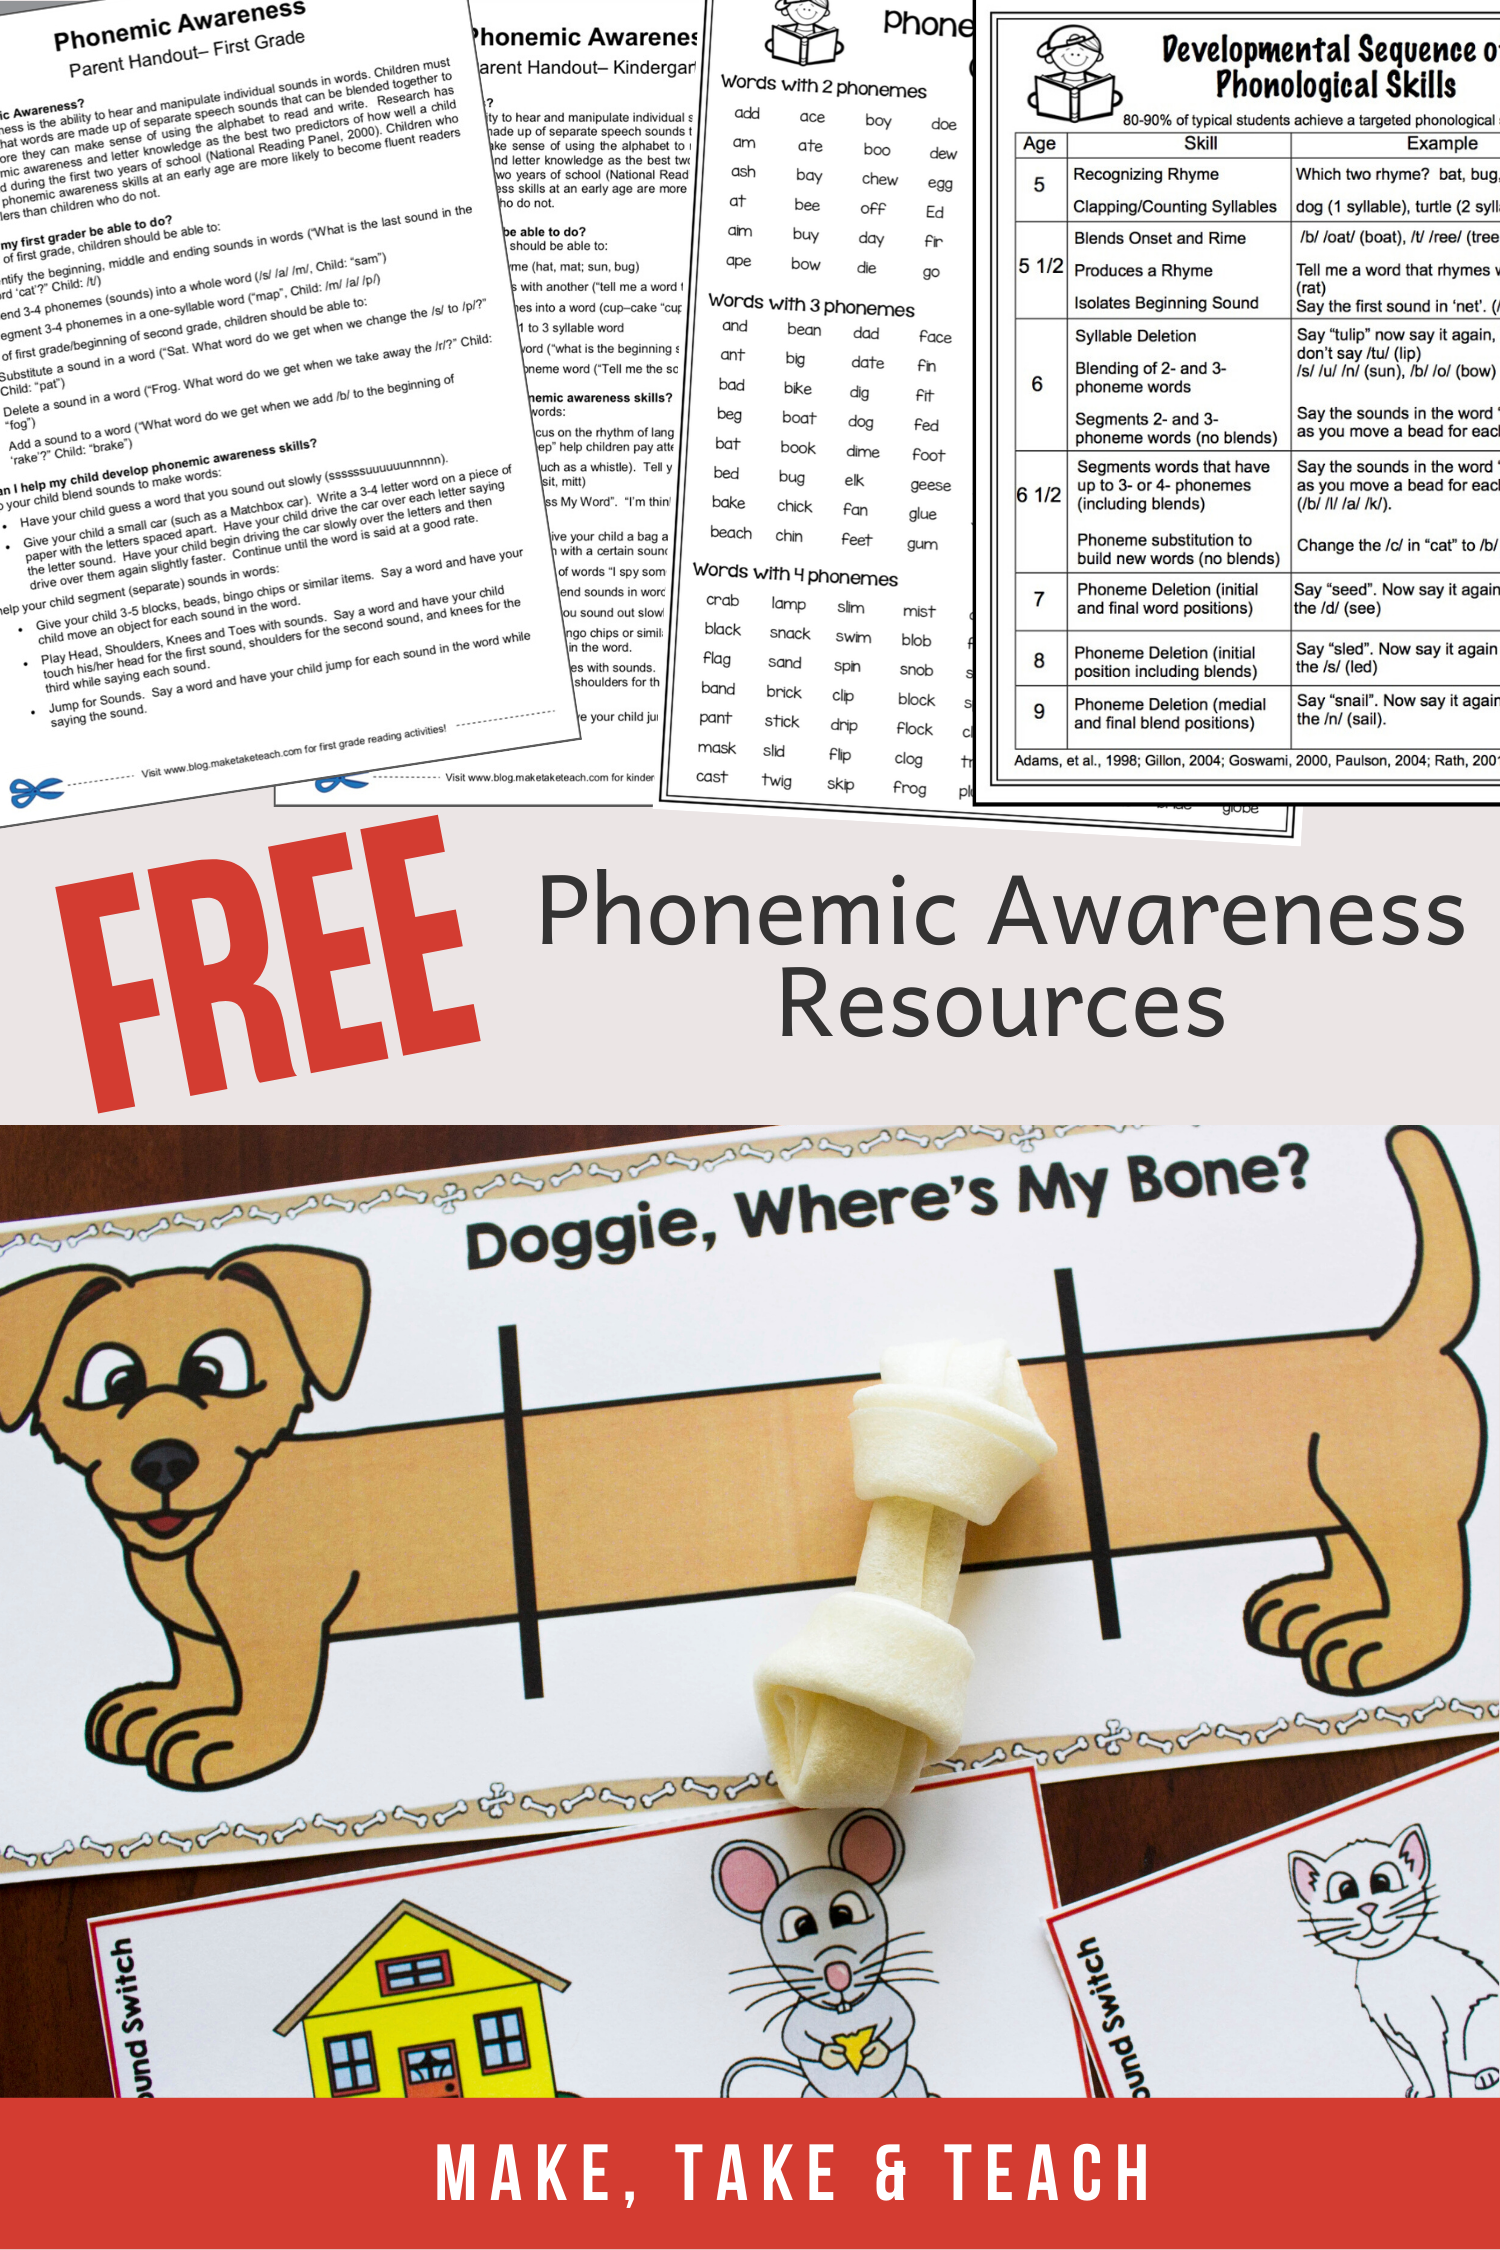 Phonemic Awareness Free Resources